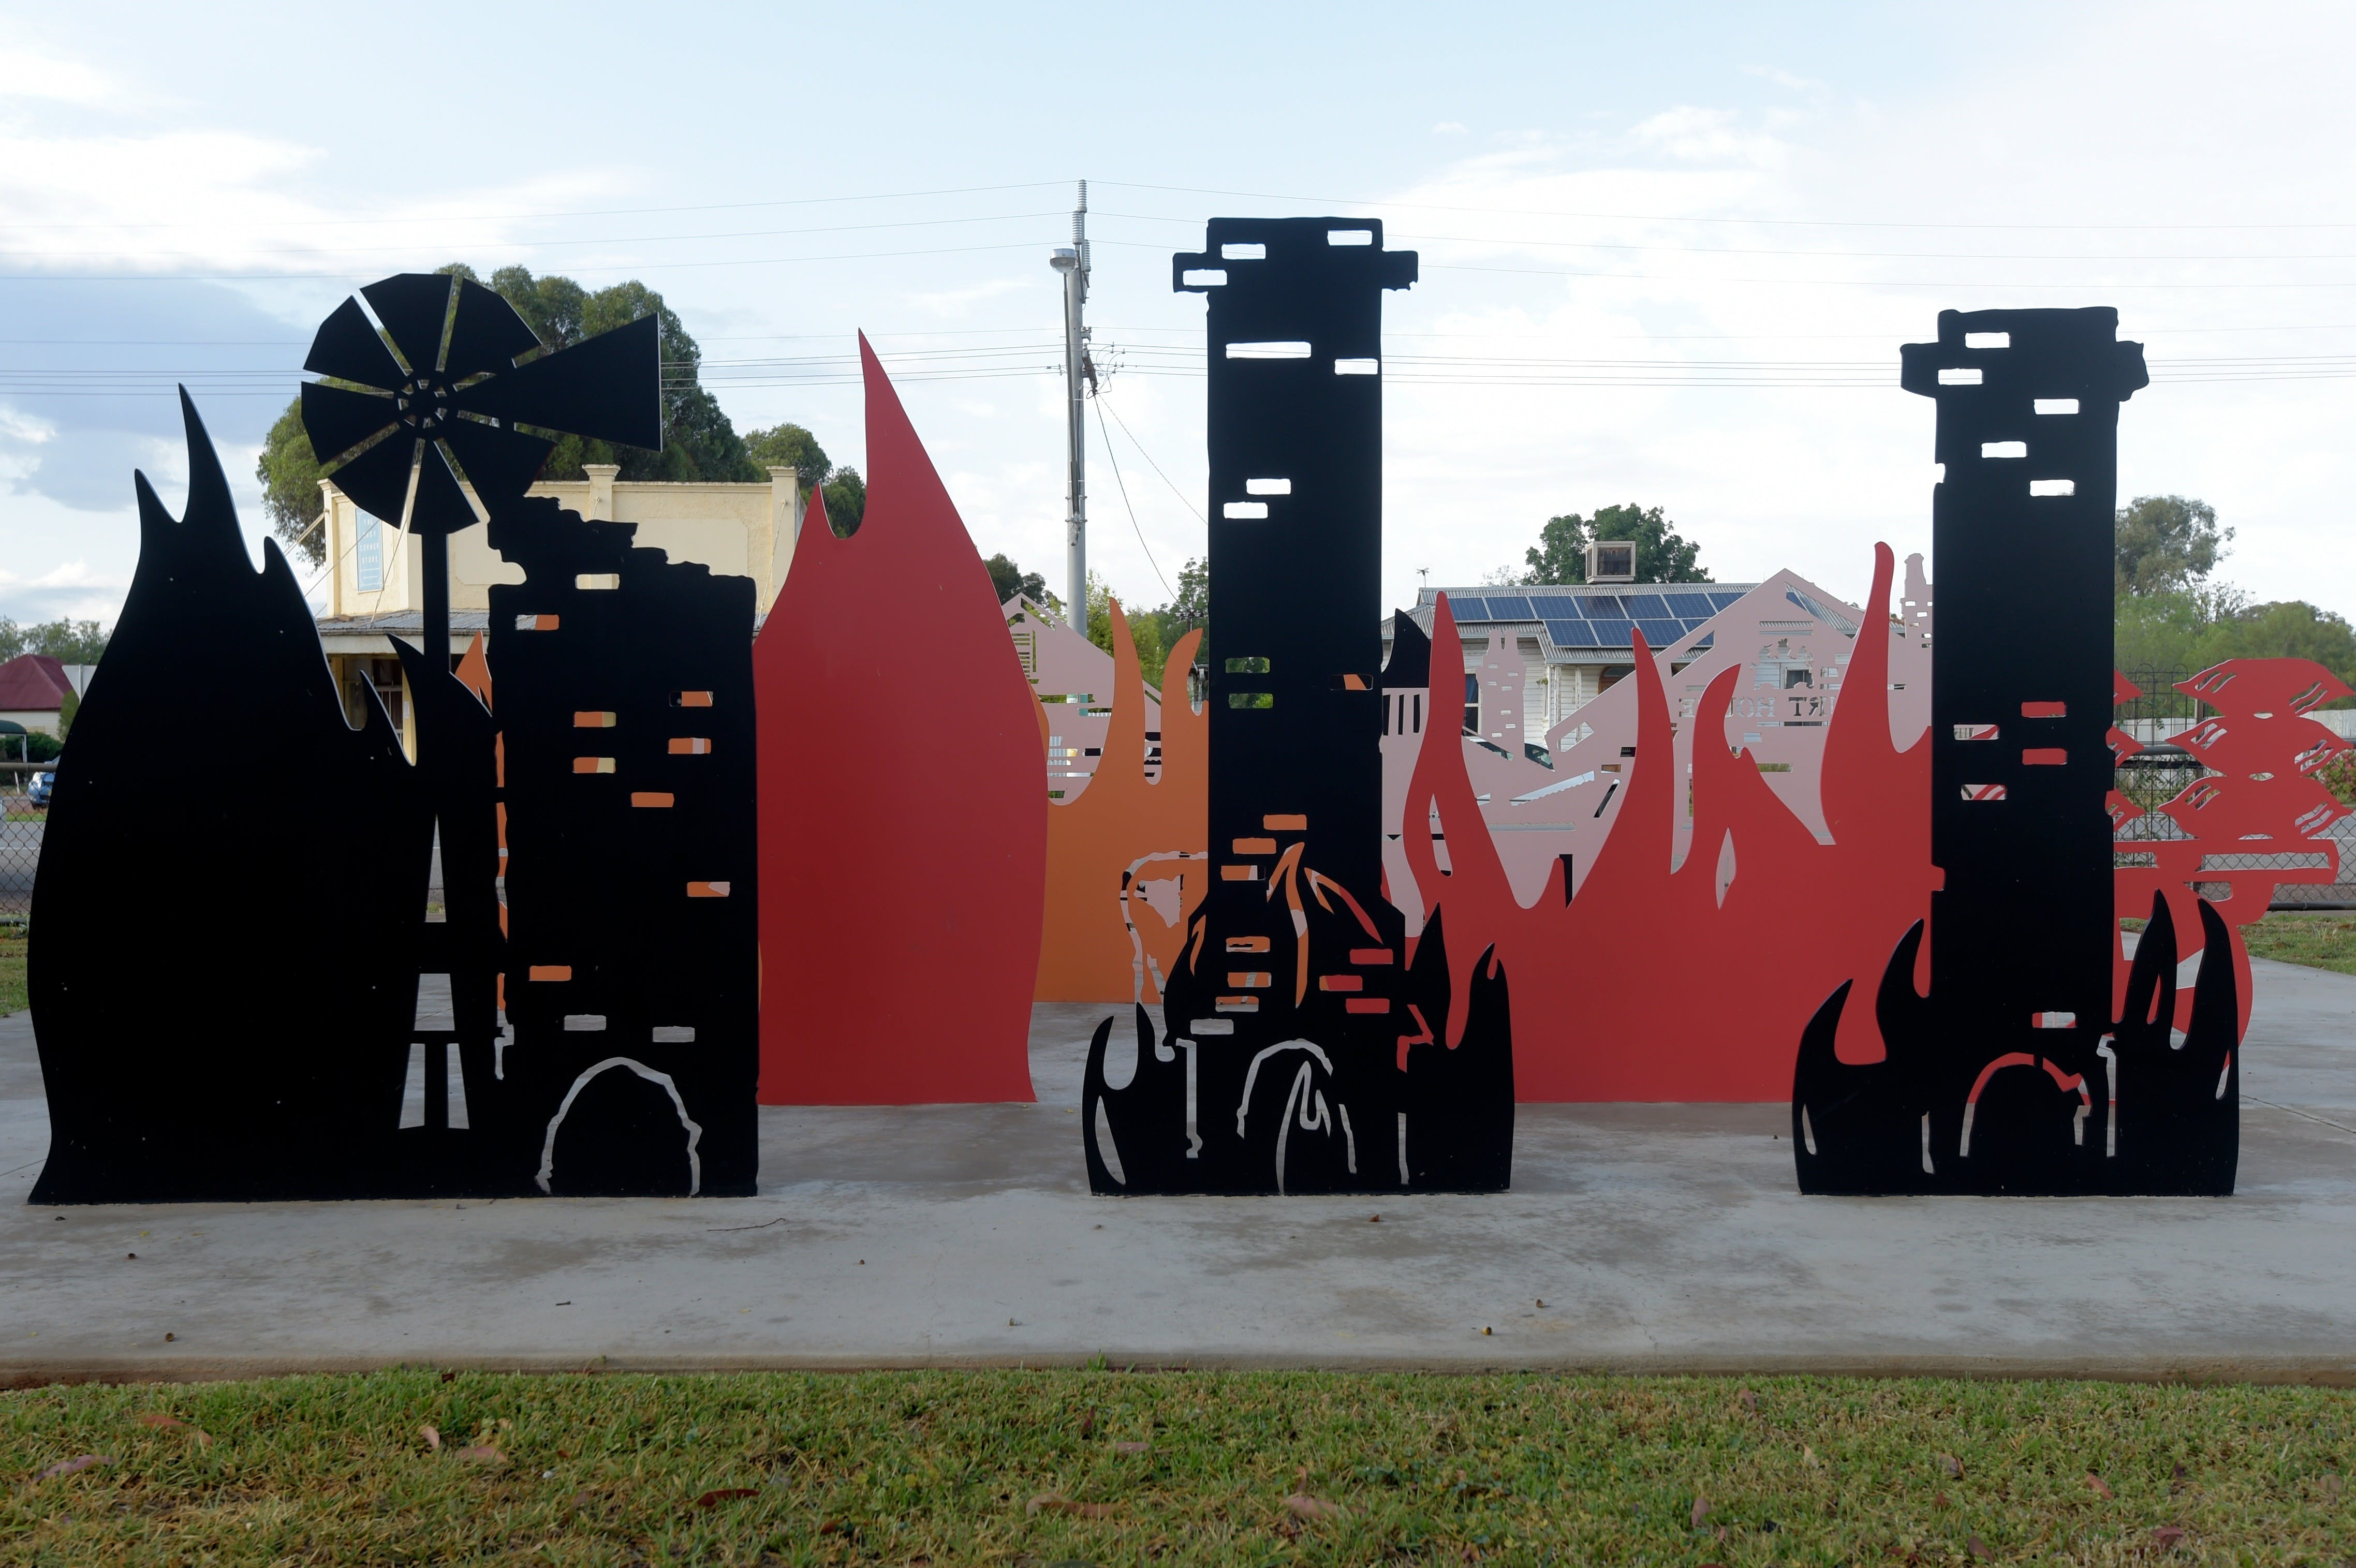 Lyrics, Landscapes and Lintels - Leeton Public Art Trail